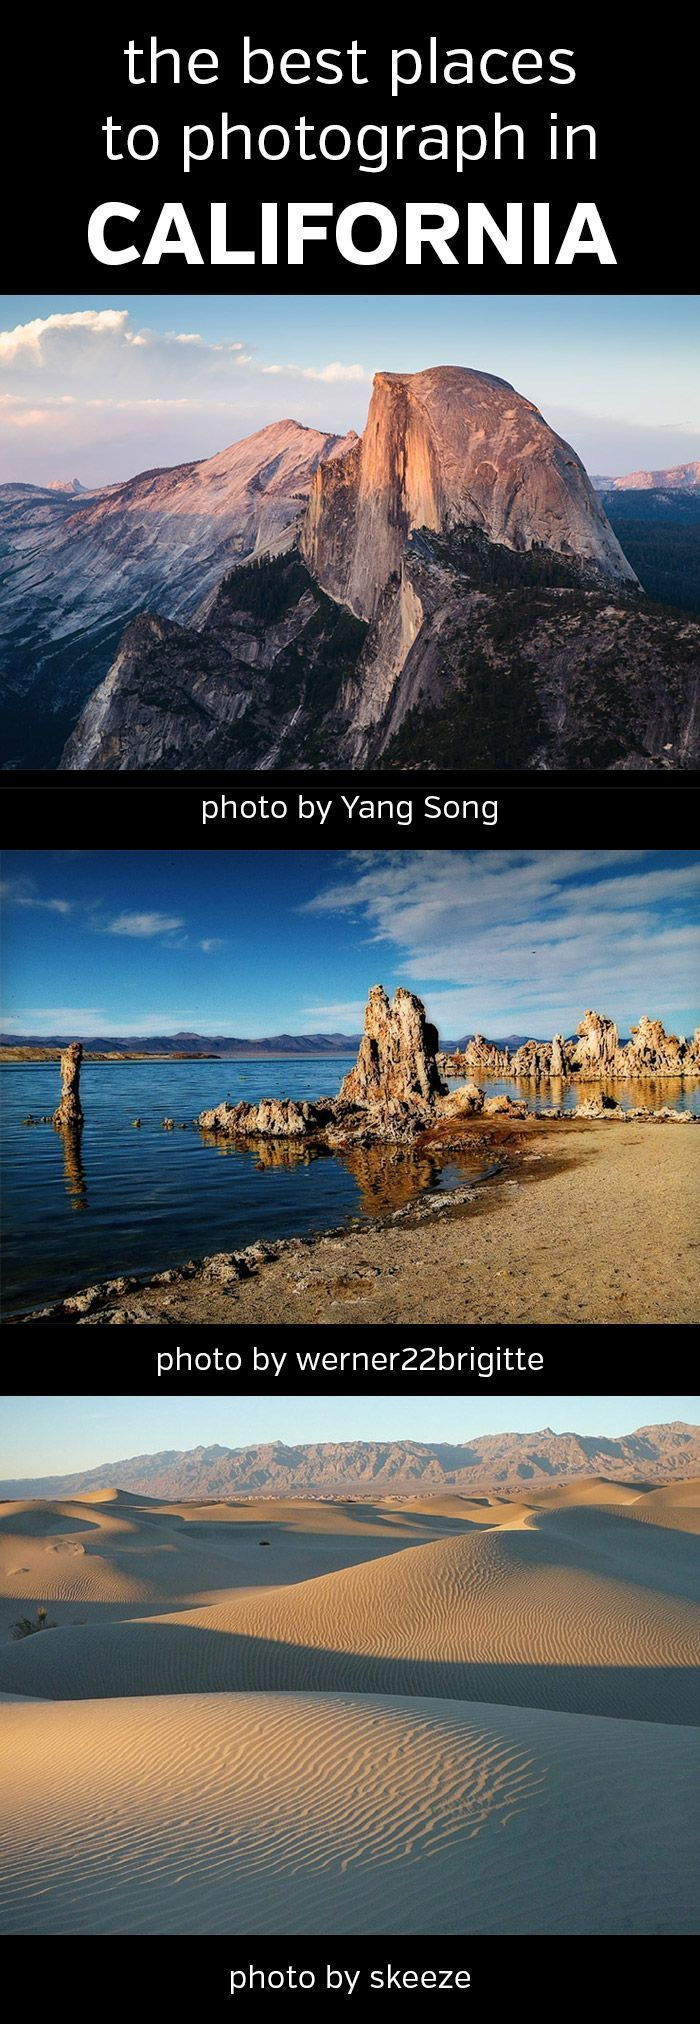 The Best Places to Photograph in California. Landscape, nature, photography, photos, Yosemite National Park, Joshua Tree, Death Valley, Pinnacles, Channel Islands, King's Canyon, Mono Lake, Eastern Sierra, Anza-Borrego Desert State Park, Mojave National Preserve, Sequoia, John Muir, Golden Gate Bridge, #california, #photography, #landscapephotography